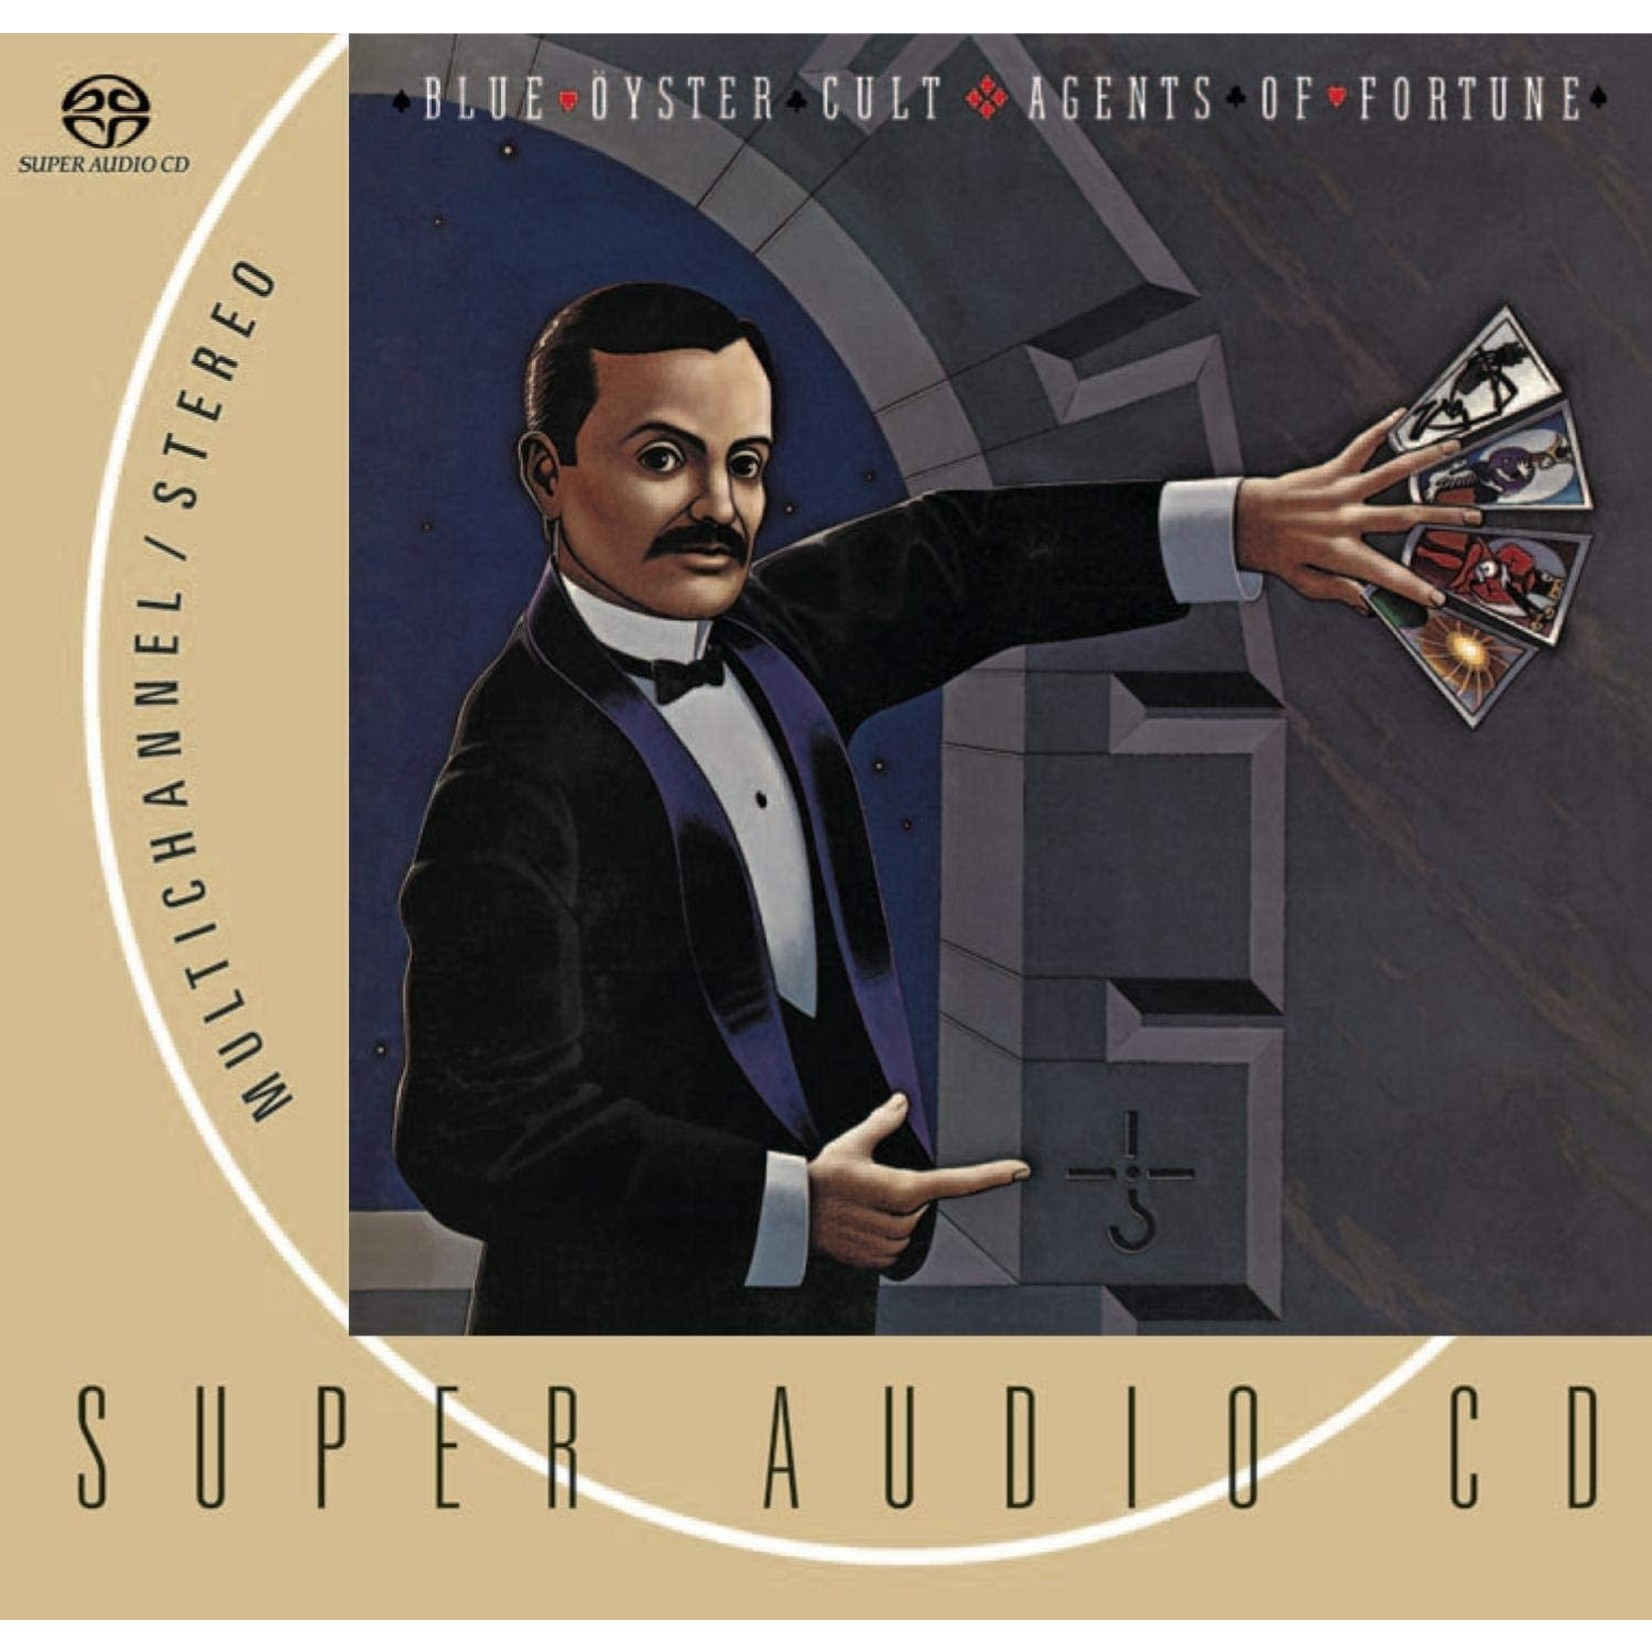 Compact Disc Blue Oyster Cult - Agents Of Fortune SACD (USED)